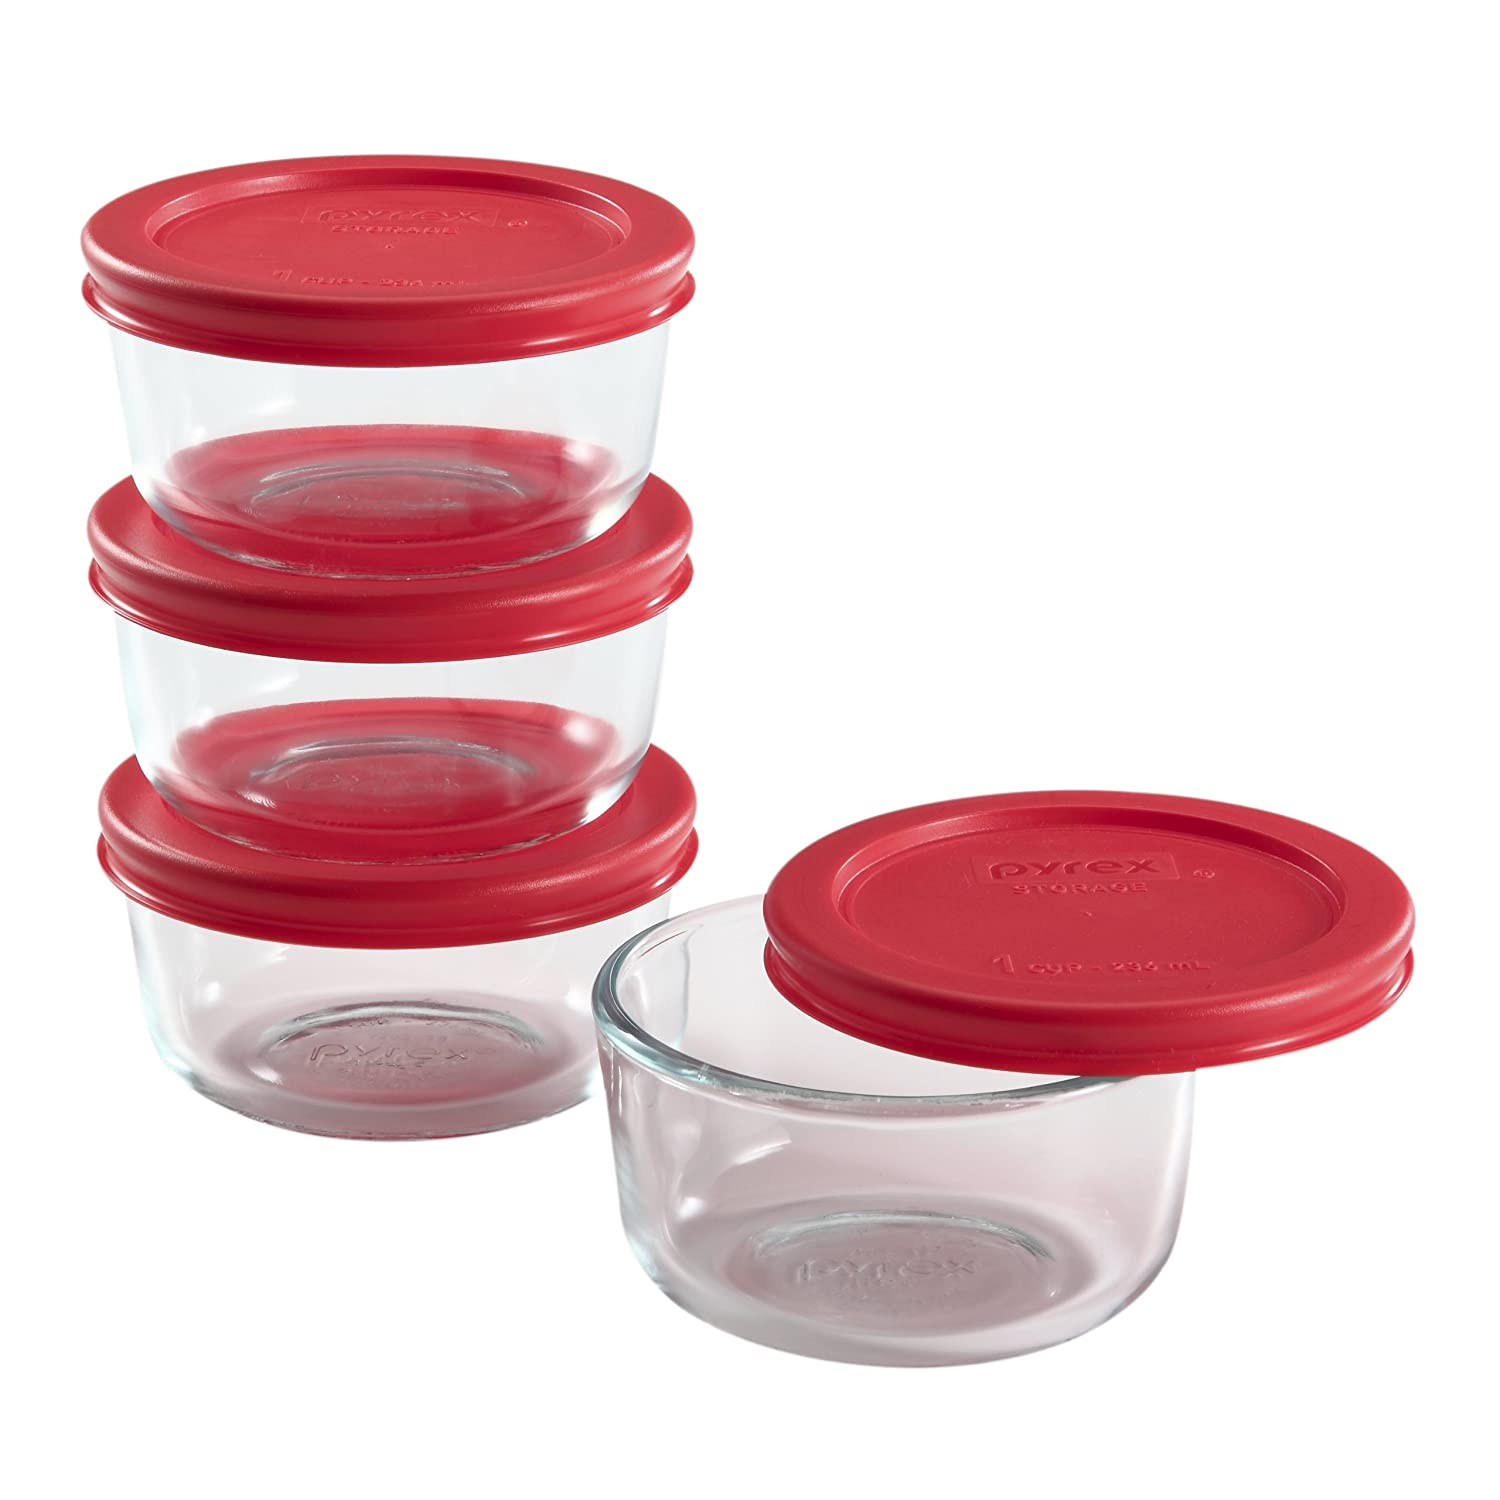 Amazon.com Pyrex Simply Store 8-Piece Glass Food Storage Set (4 vessels and 4 lids) Pyrex Glass Storage Containers With Lids Kitchen u0026 Dining  sc 1 st  Amazon.com & Amazon.com: Pyrex Simply Store 8-Piece Glass Food Storage Set (4 ...